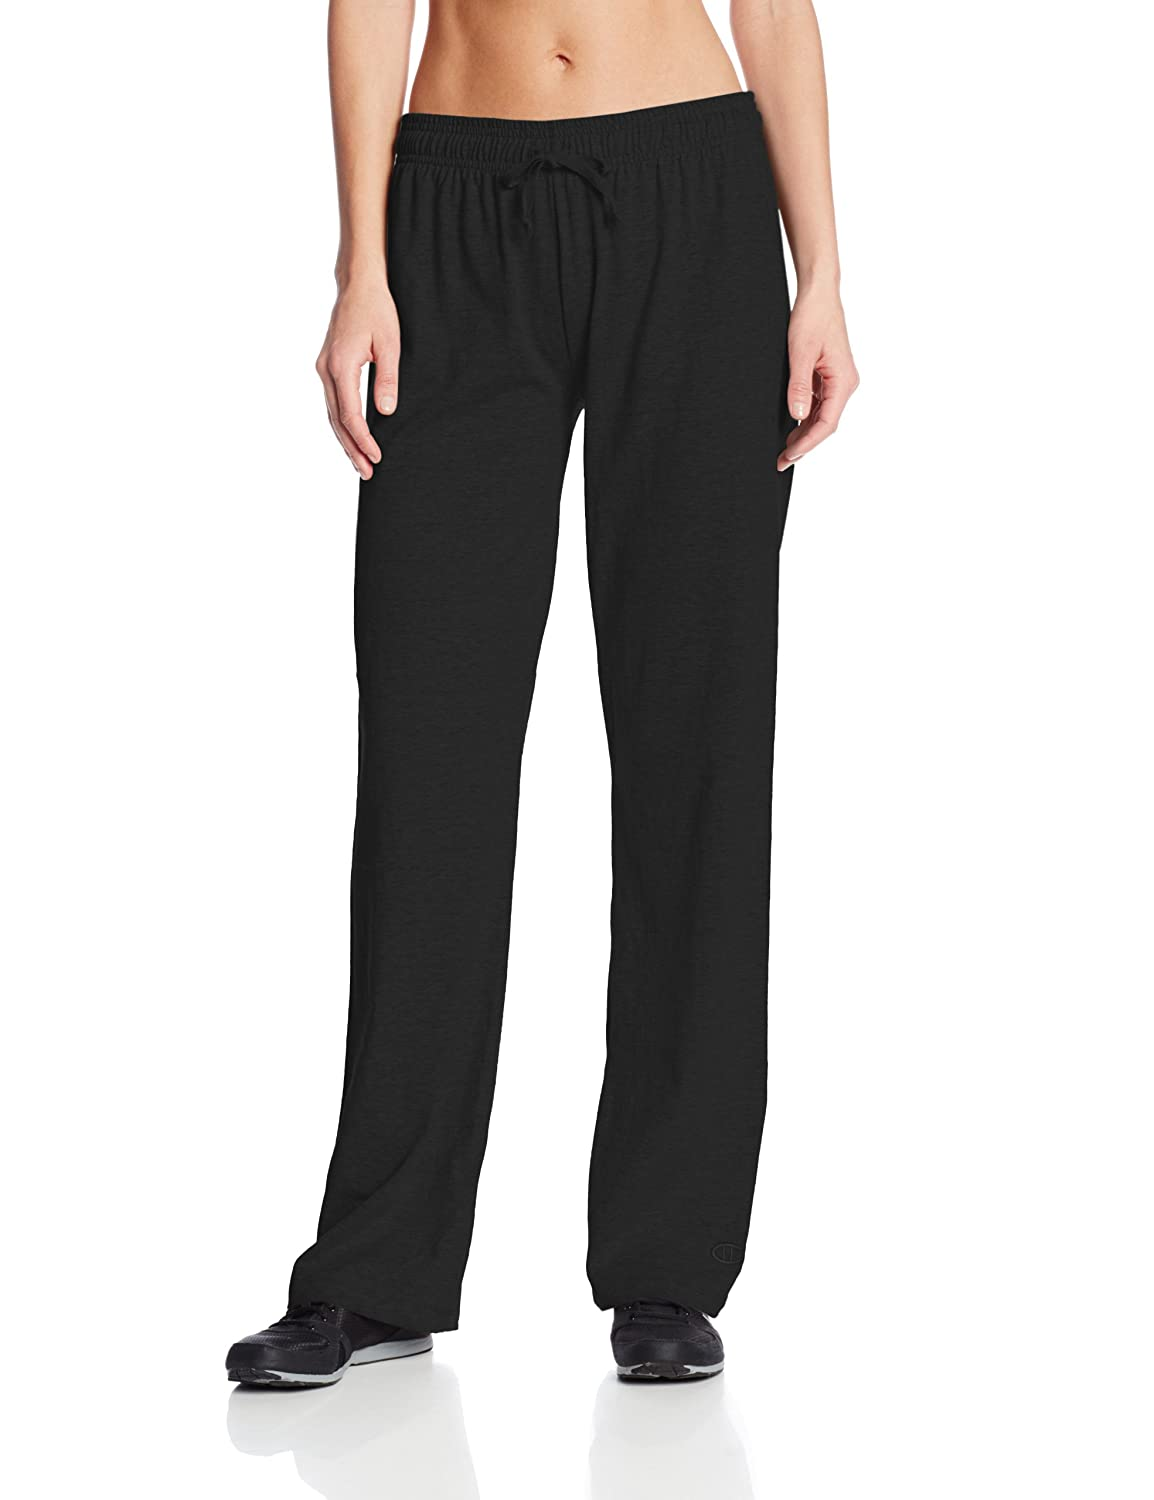 Womens Casual Pants | Amazon.com